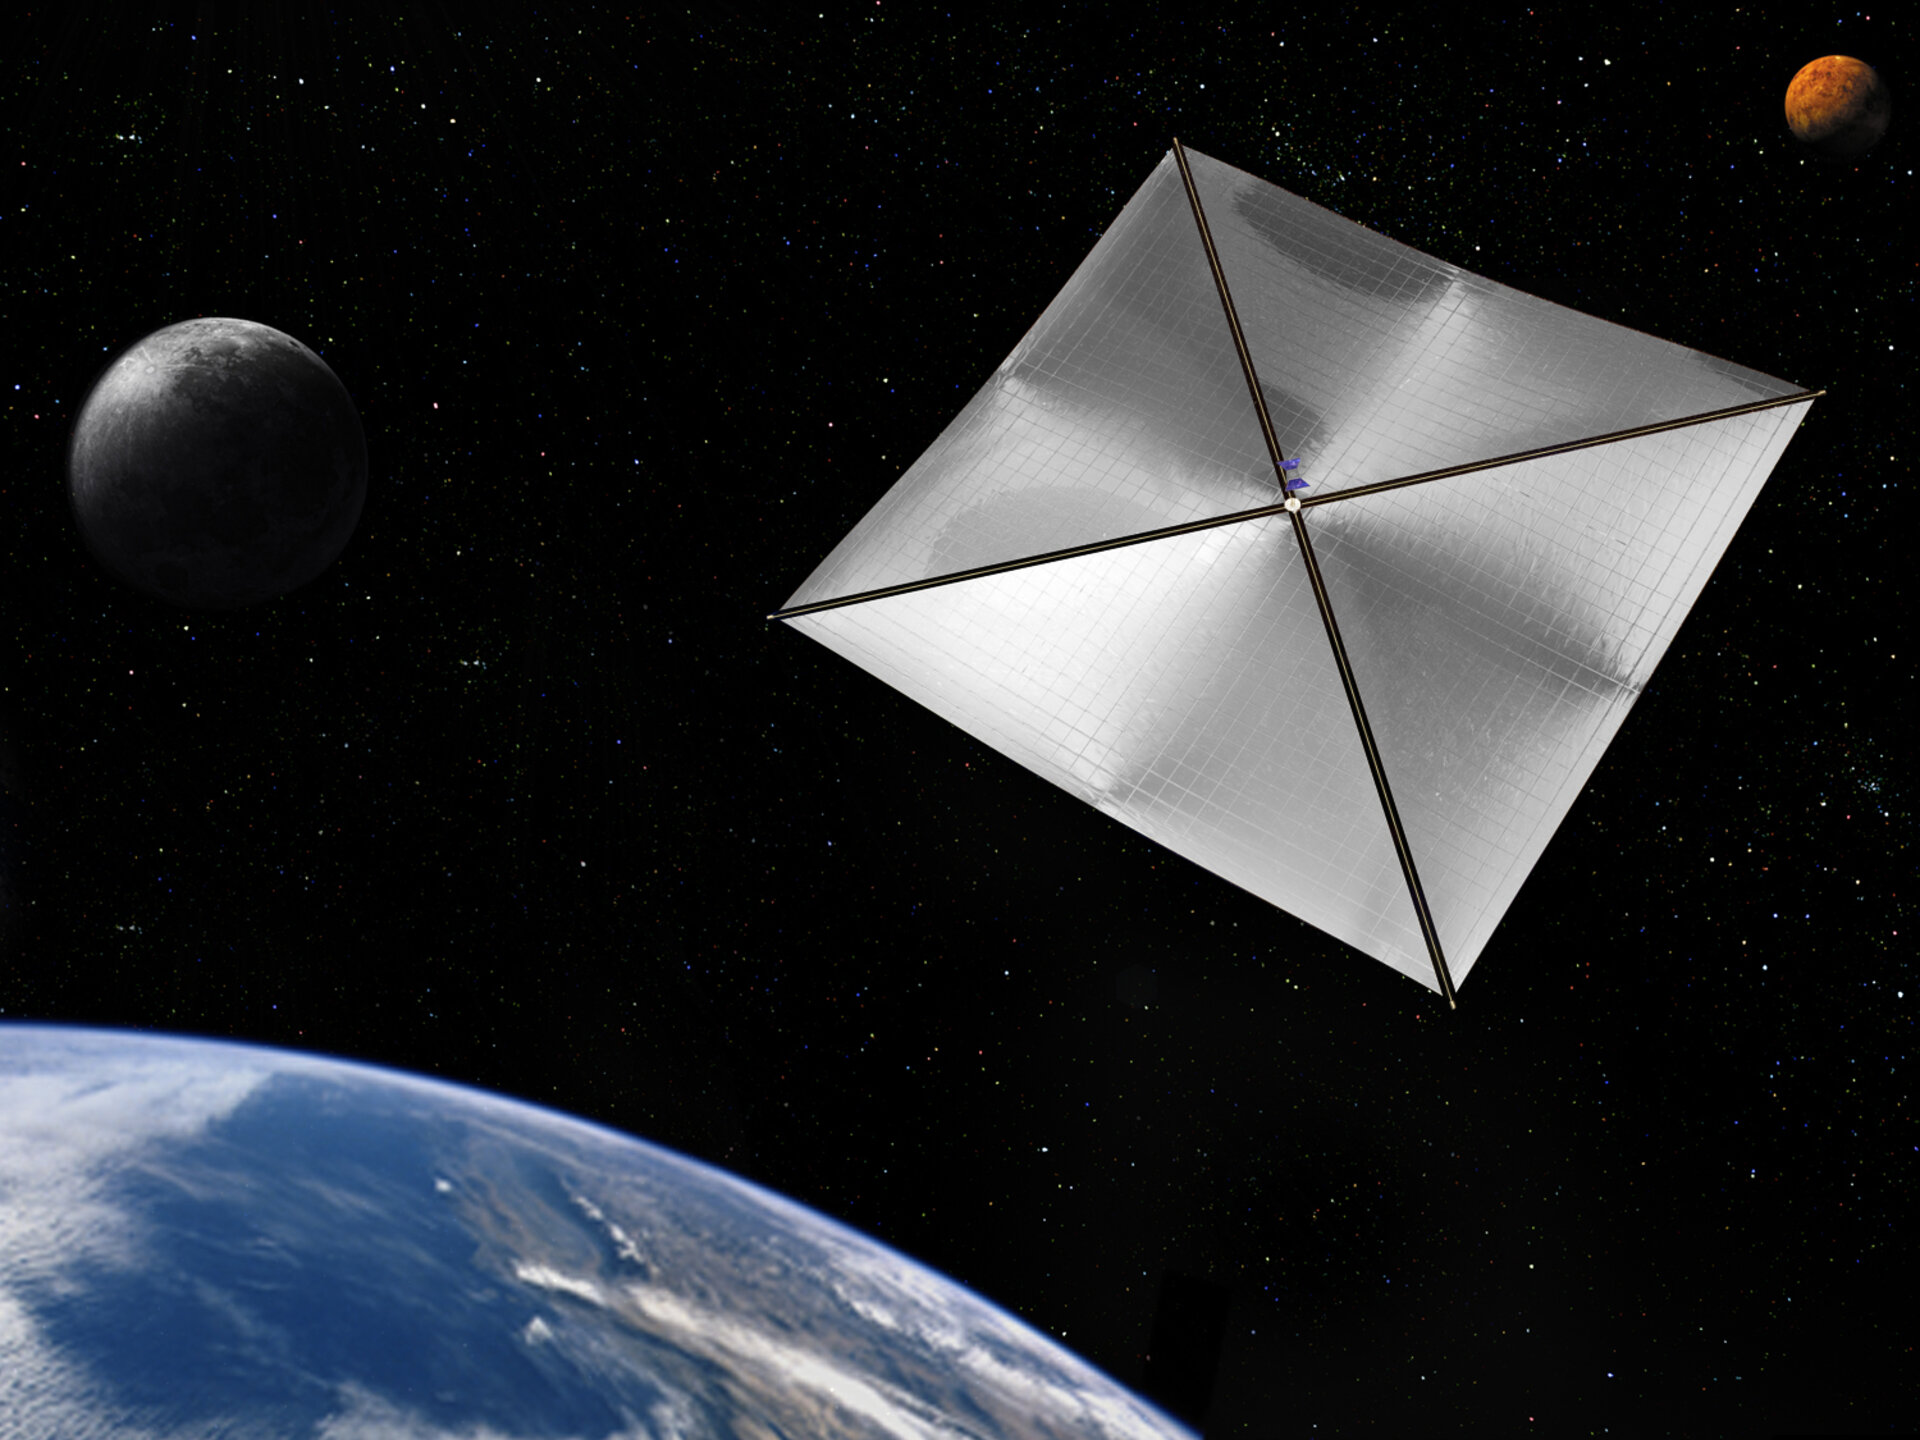 Solar sail could be used for deorbiting satellites